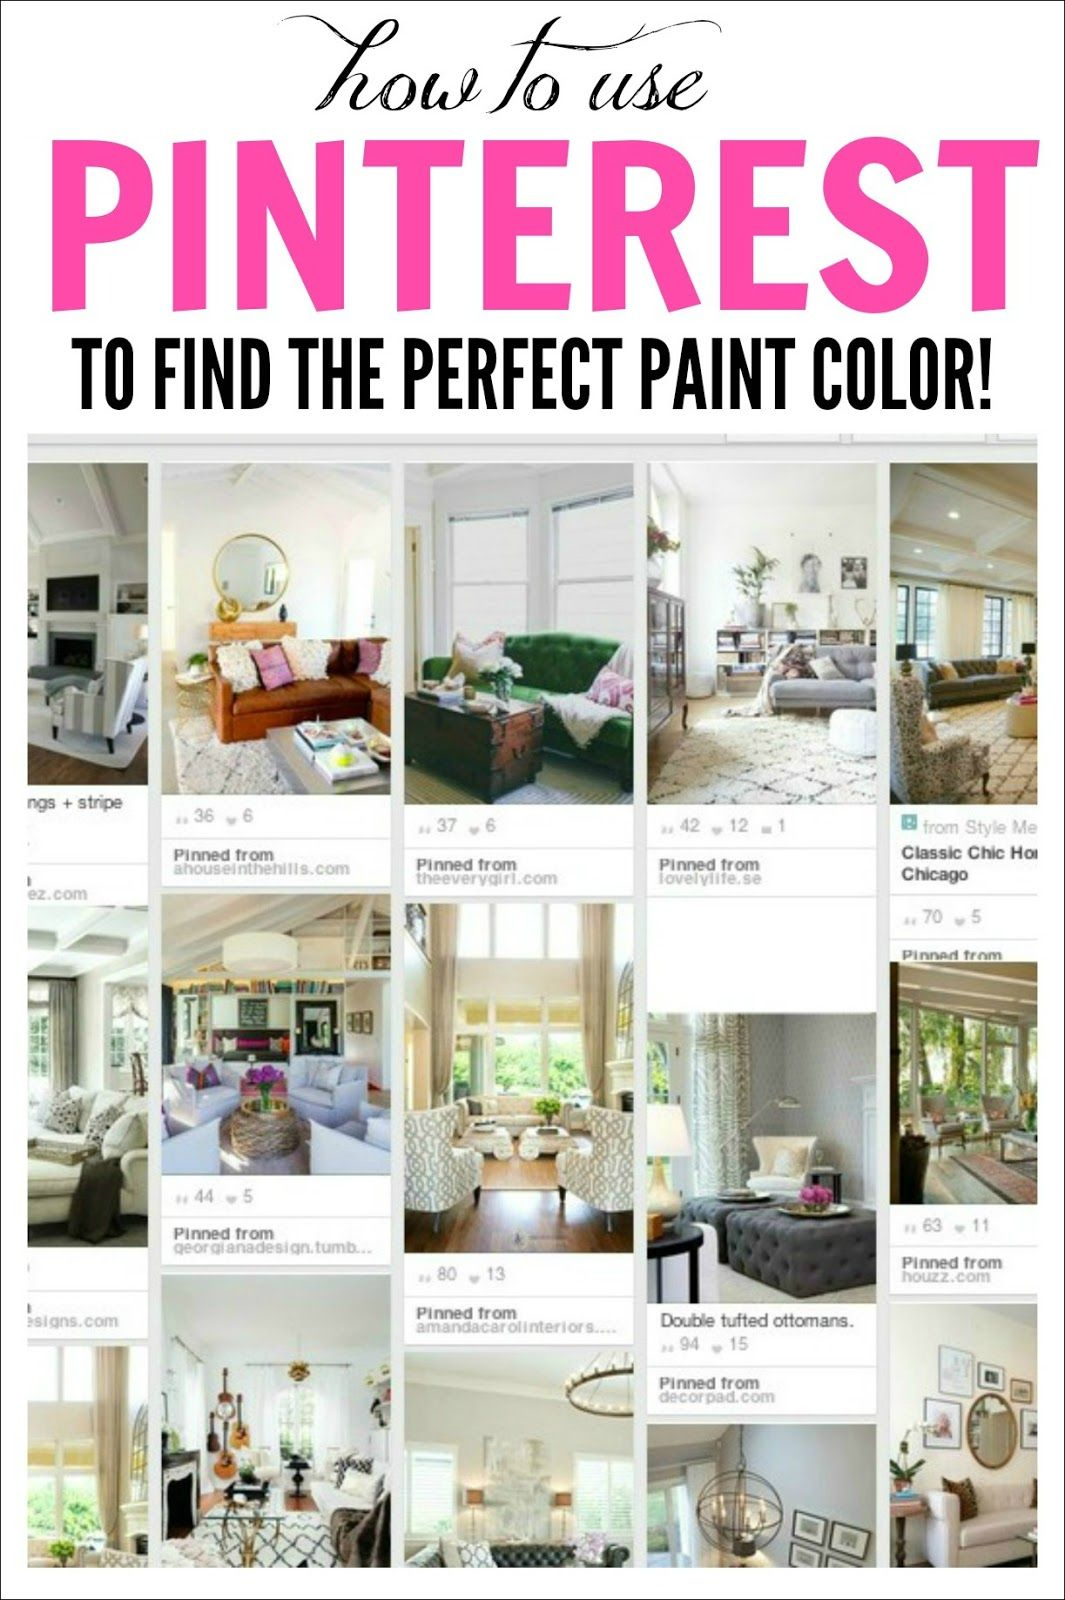 how to choose a paint colorHow To Choose a Paint Color 10 tips to help you decide This is